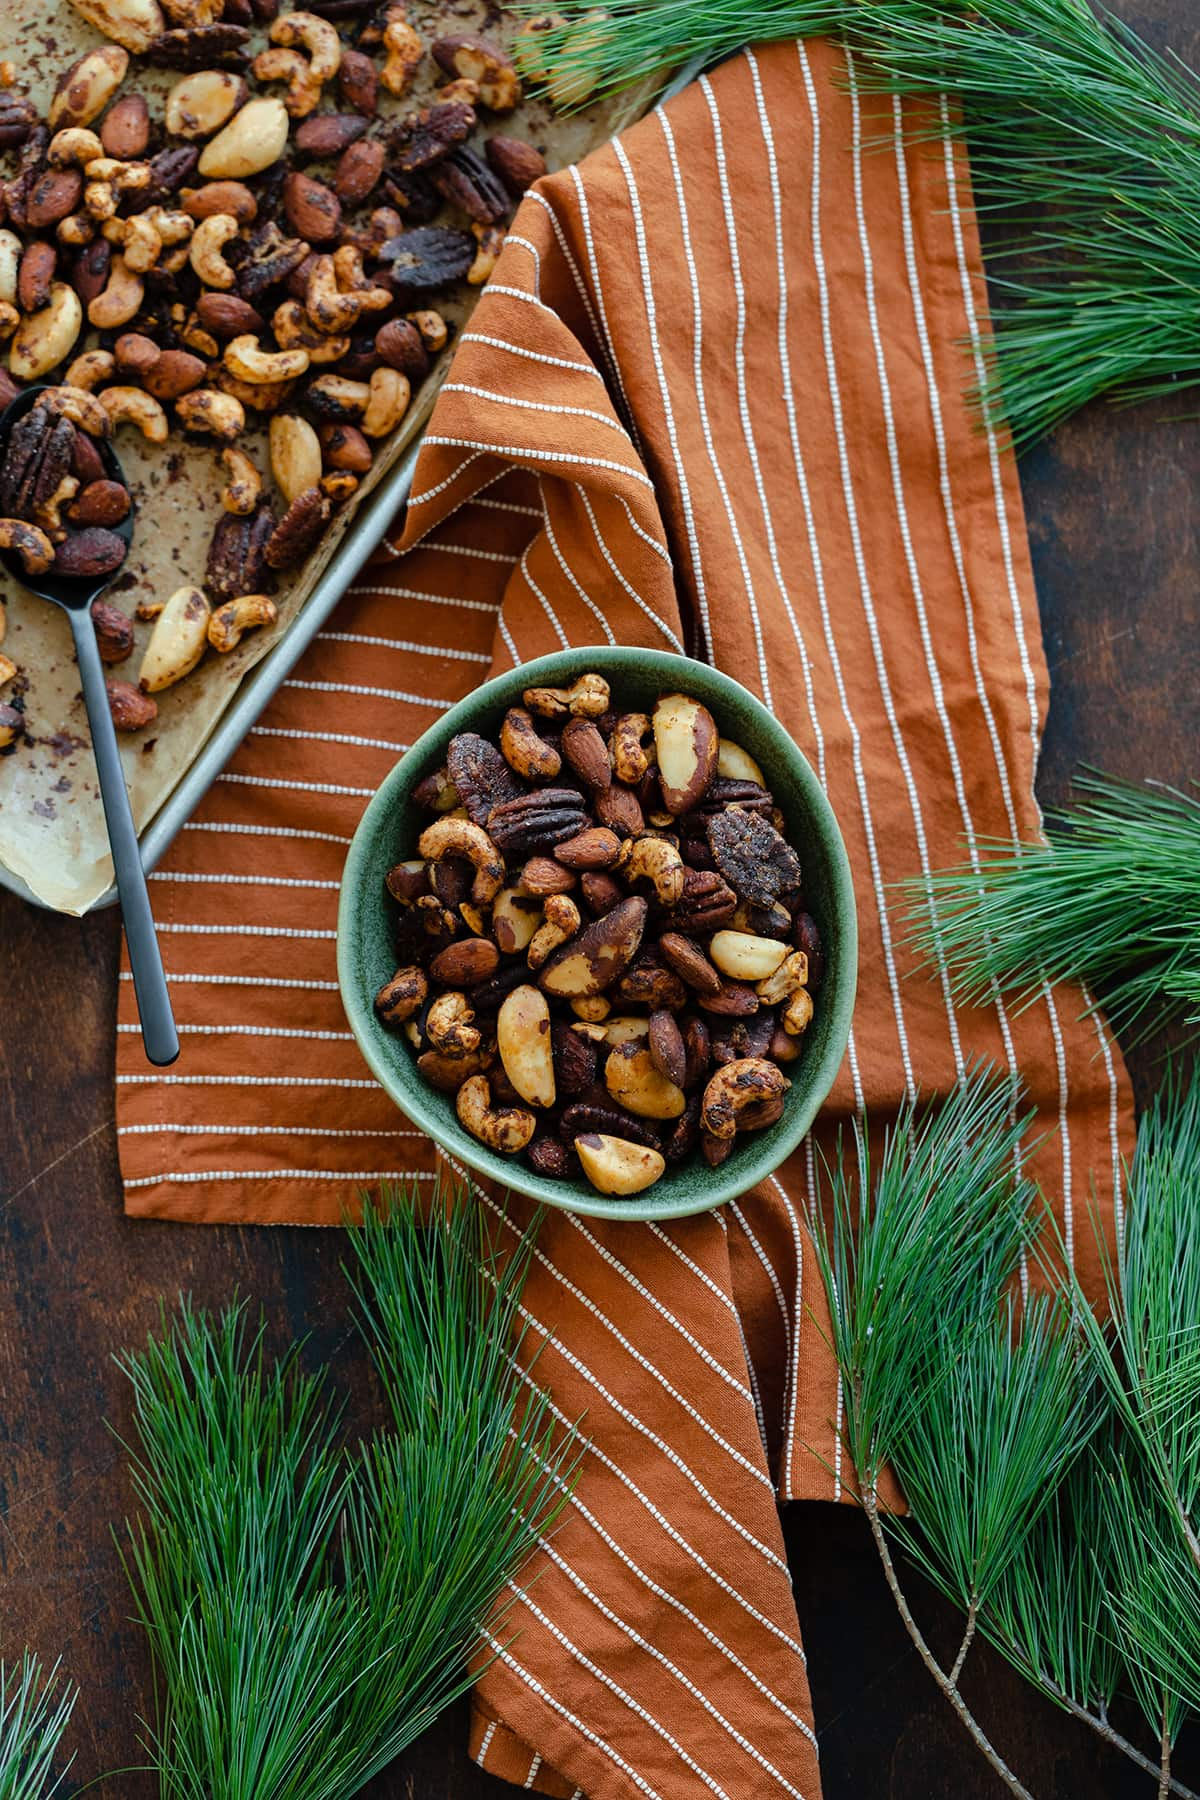 Mixed roasted nuts in a green bowl on an orange and white striped napkin. Pine needles peeking into the shot in the top right, bottom left, and bottom right corners.